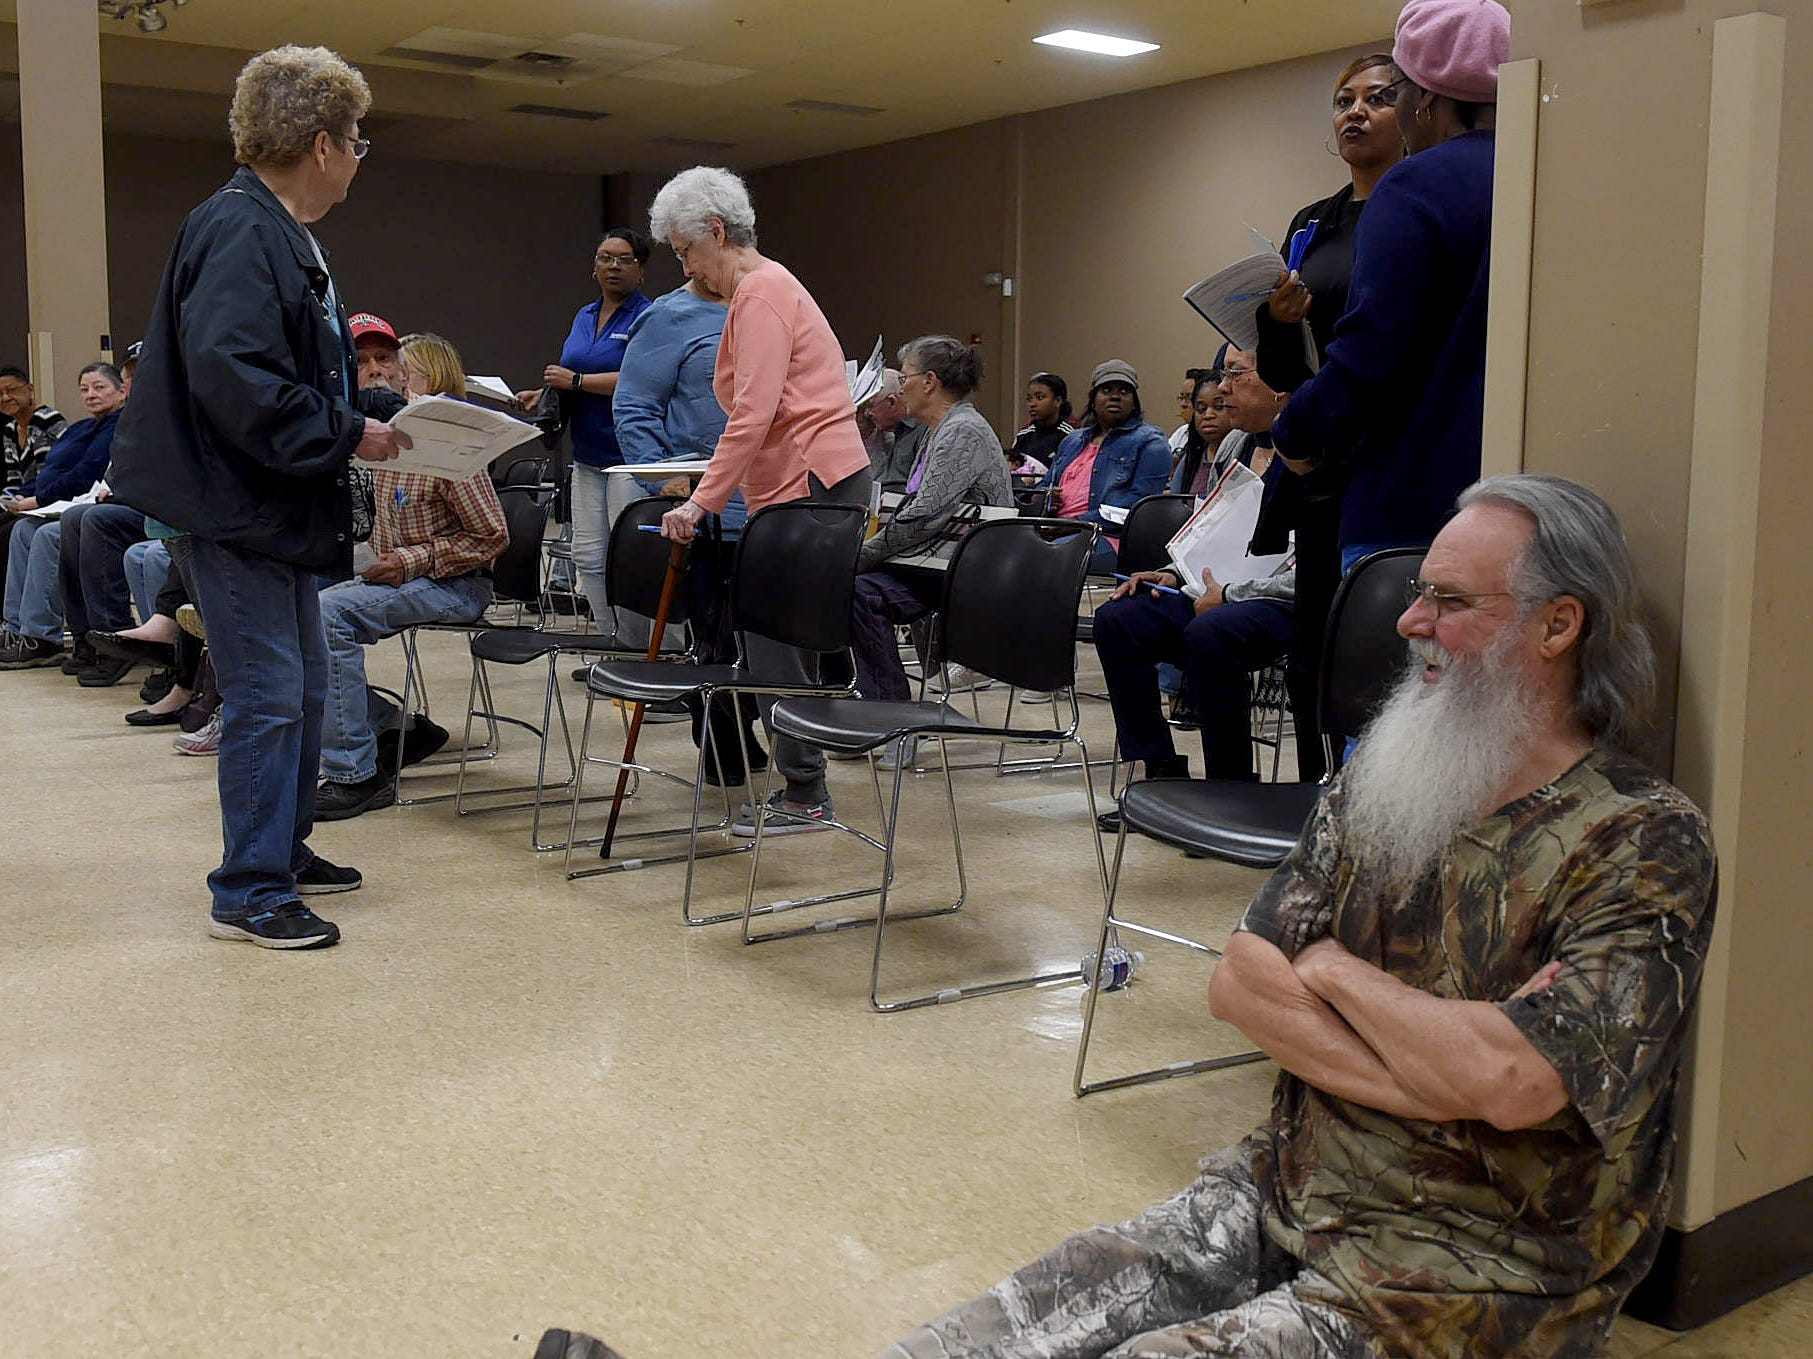 For the 14th year Ledricka Thierry and volunteers have offered free tax service to residents of St. Landry Parish. A large turnout was on hand Saturday for the service that was held at the Opelousas Civic Center.